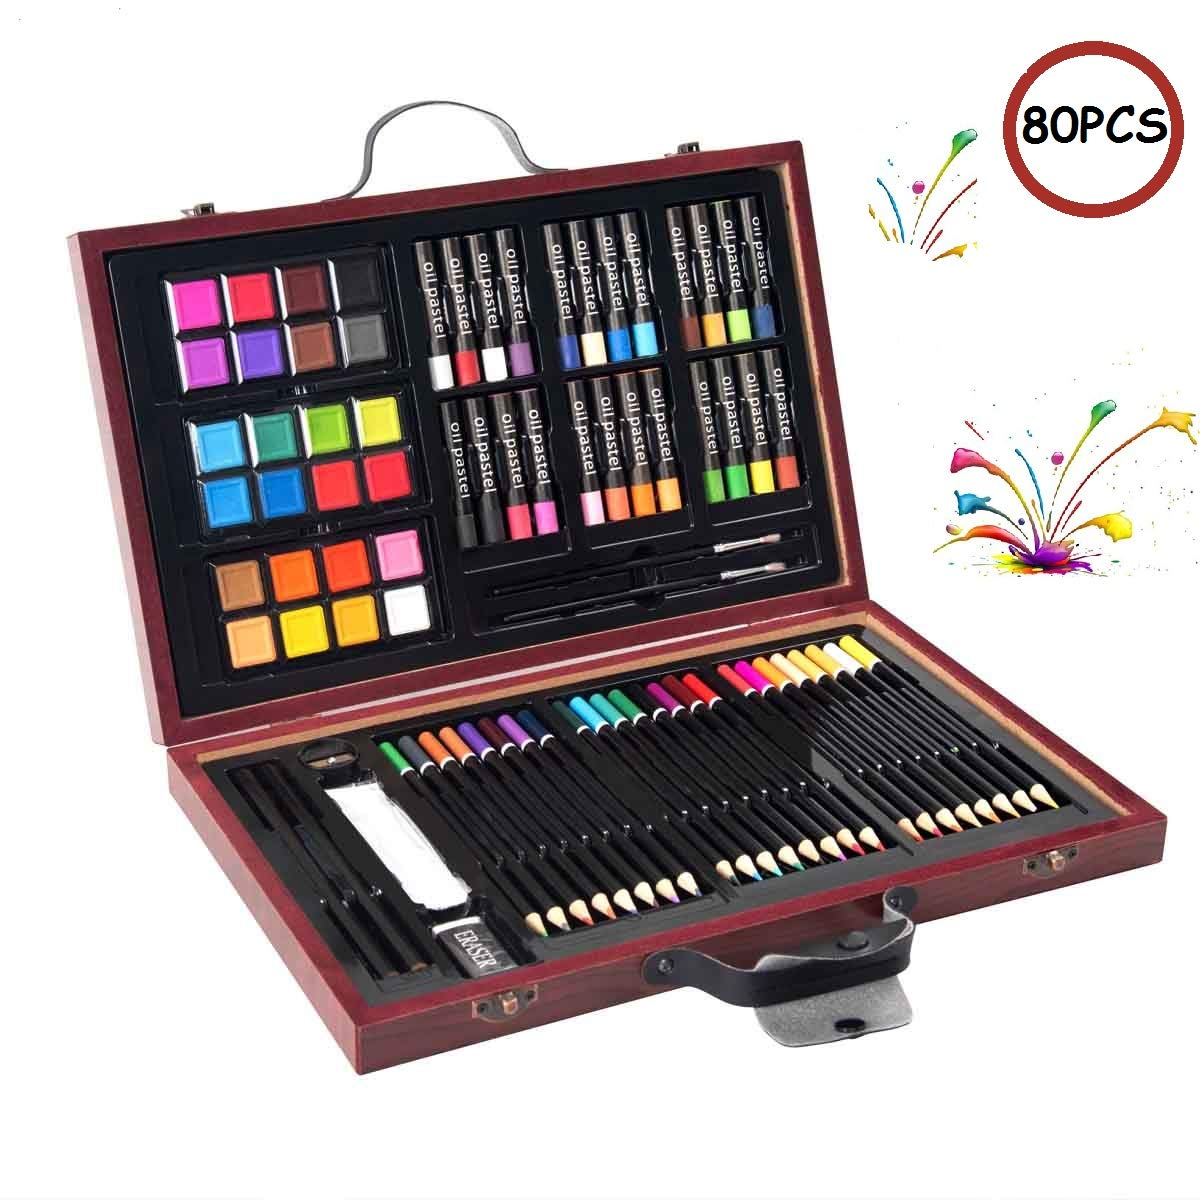 Costway 80 Piece Deluxe Art Set Painting Drawing Art School Stationery Creativity Set Kids Children Gift in Wooden Case